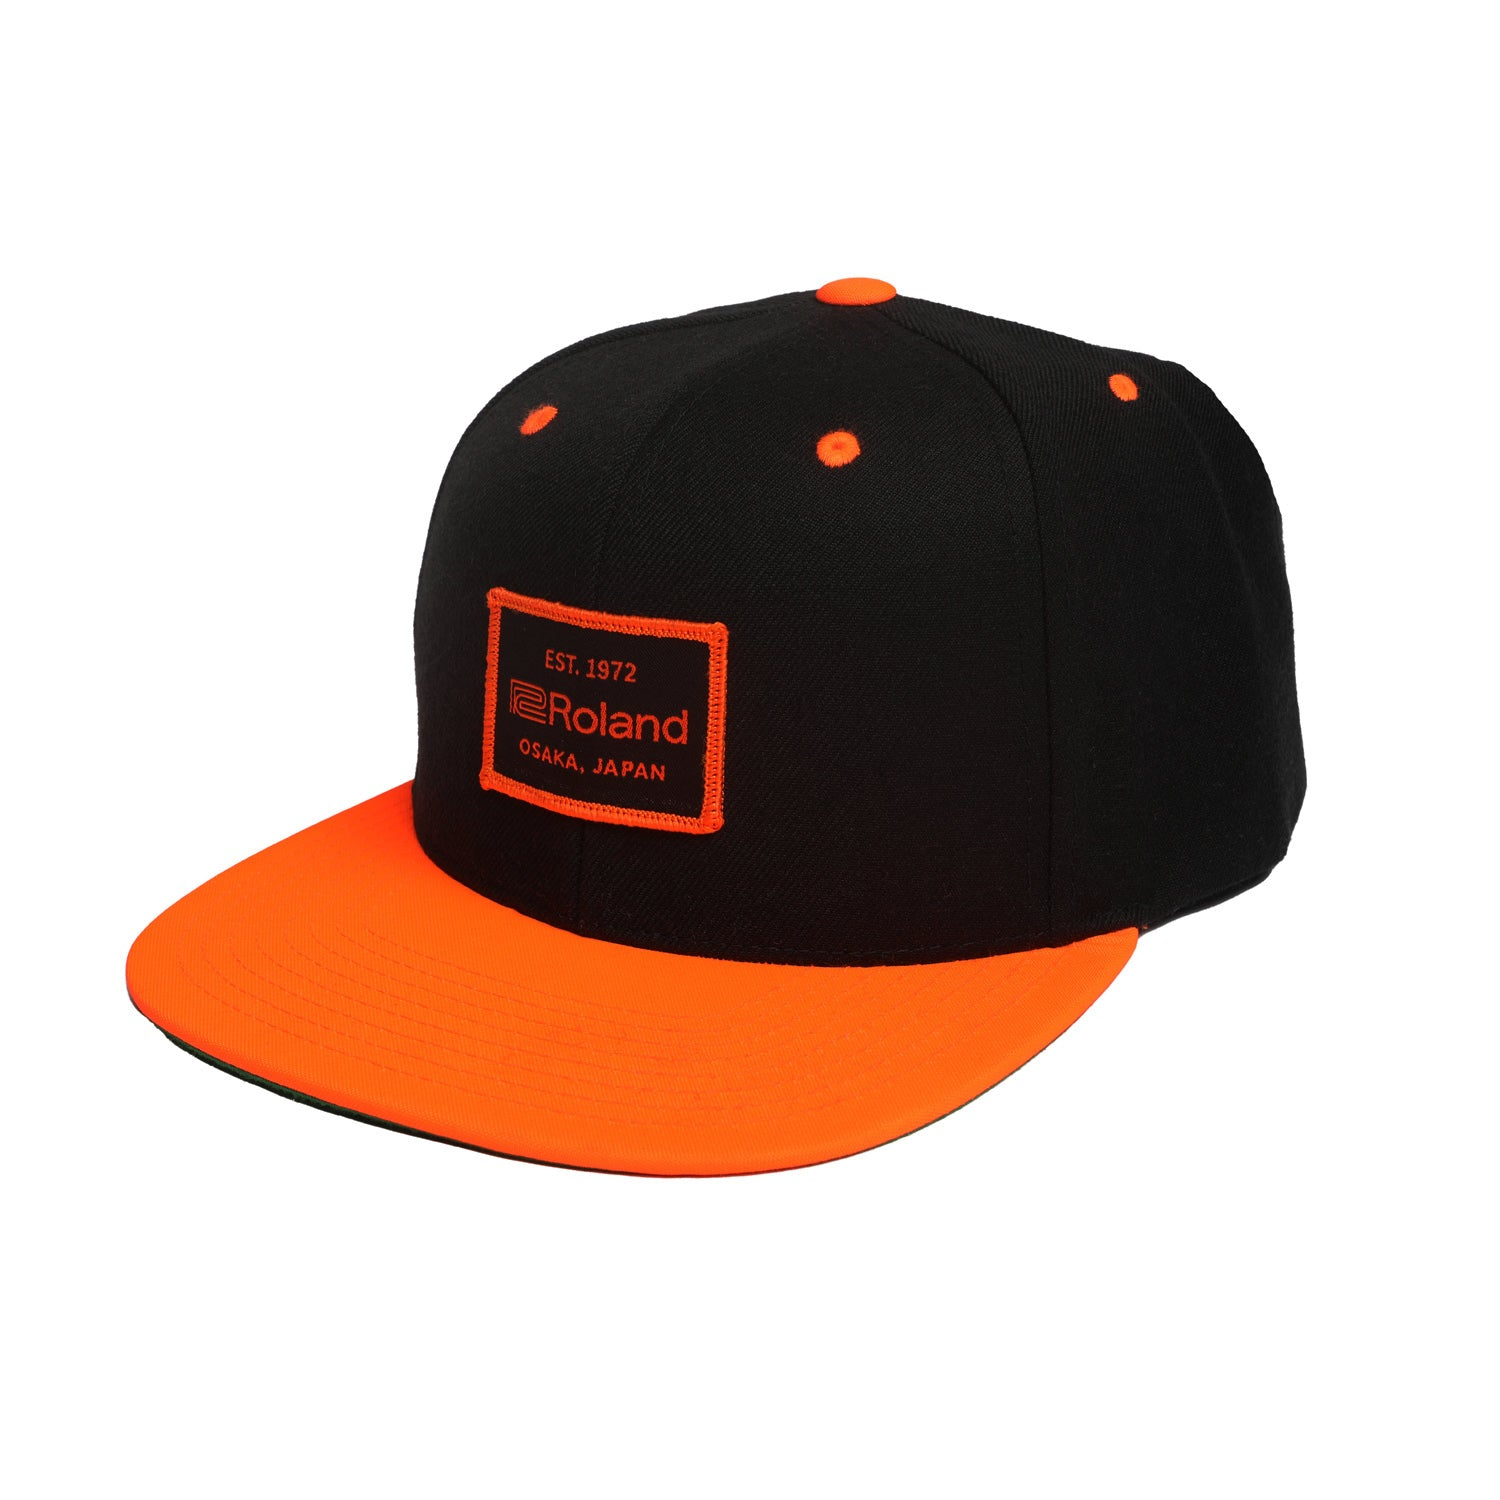 Roland EST. 1972 - Snapback Hat - Orange